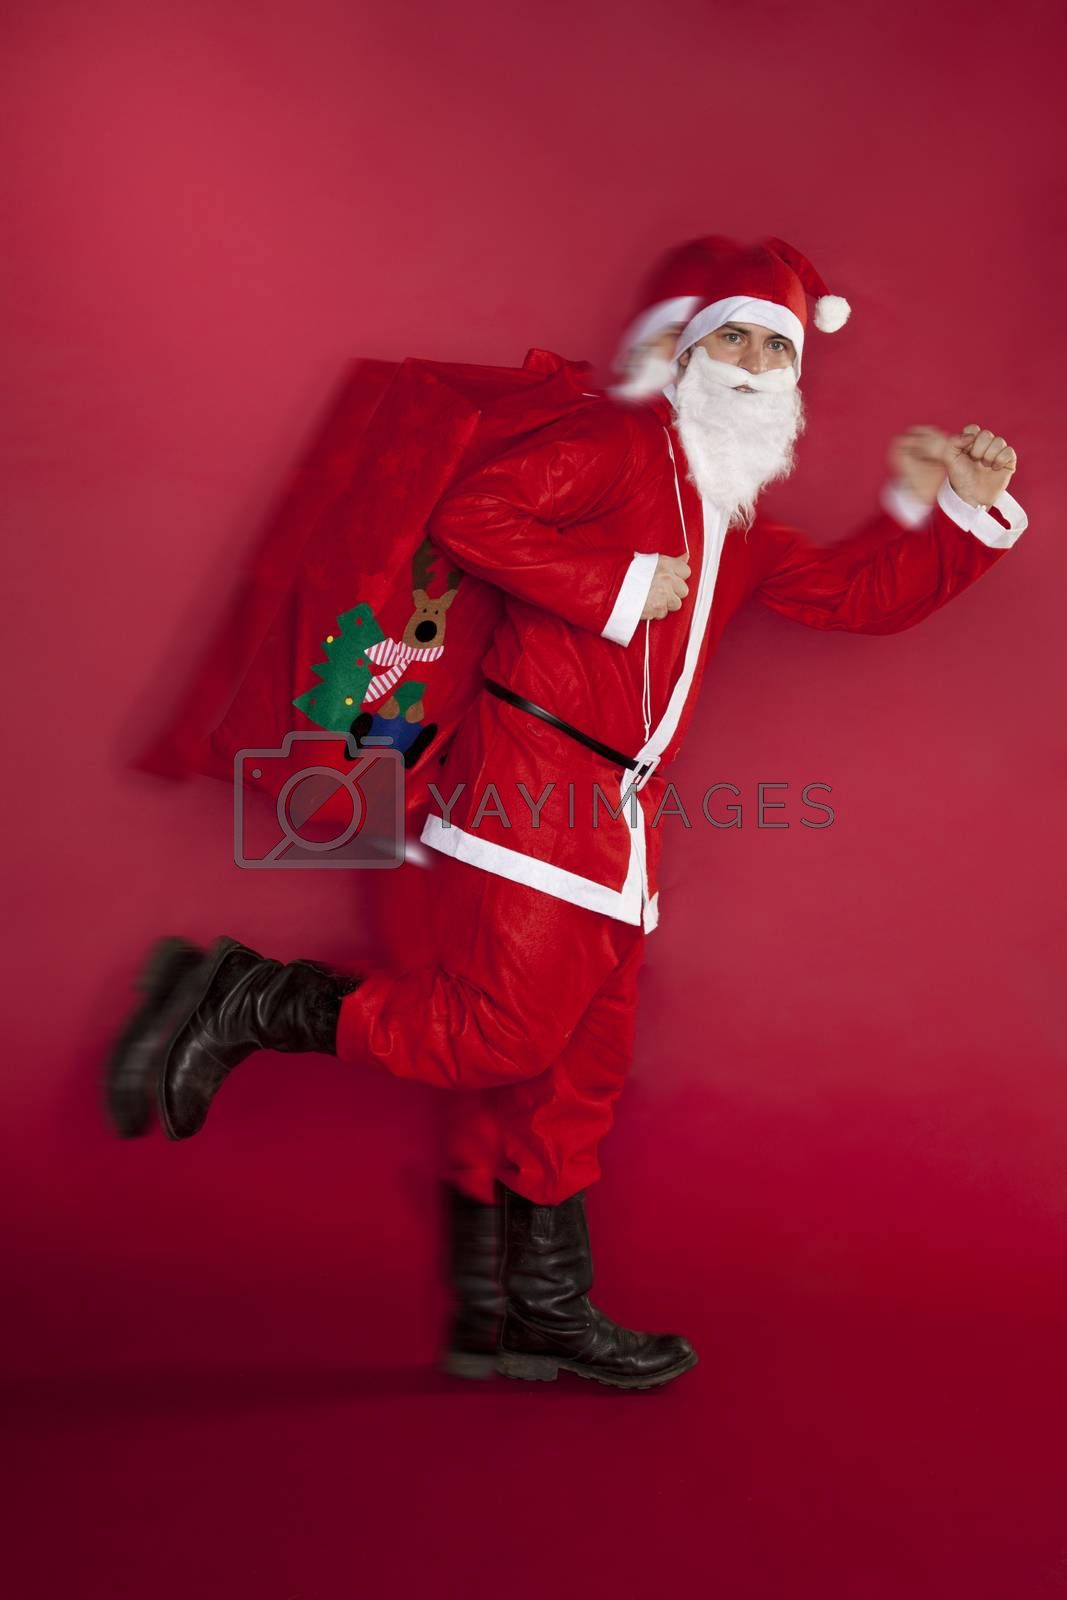 Santa Claus is in a hurry to deliver gifts